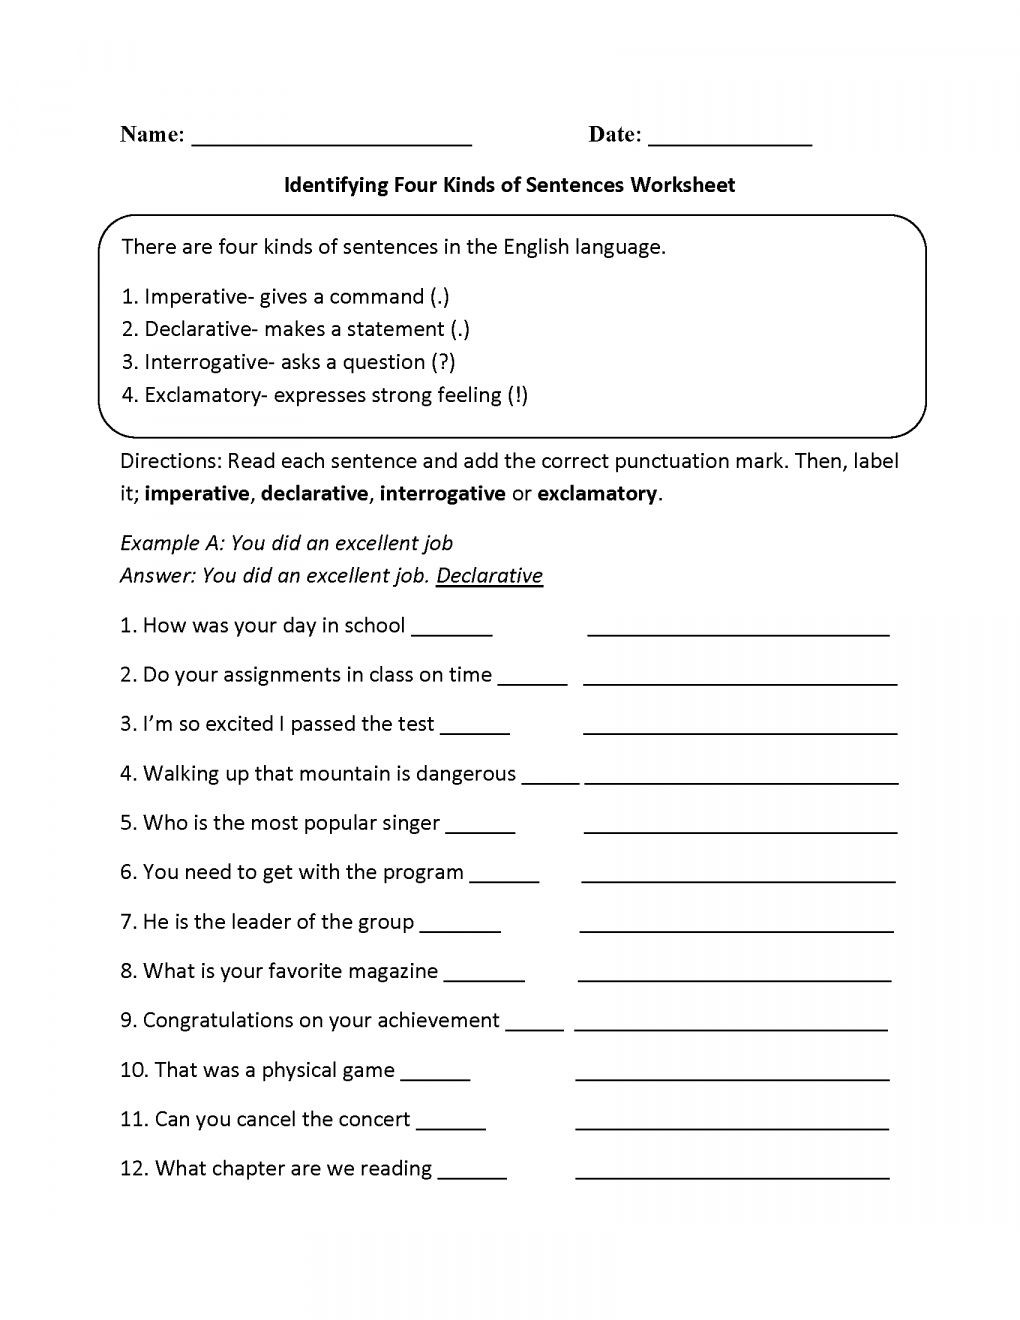 Types Of Sentences Worksheet Learning Image by Kim Caso In 2020